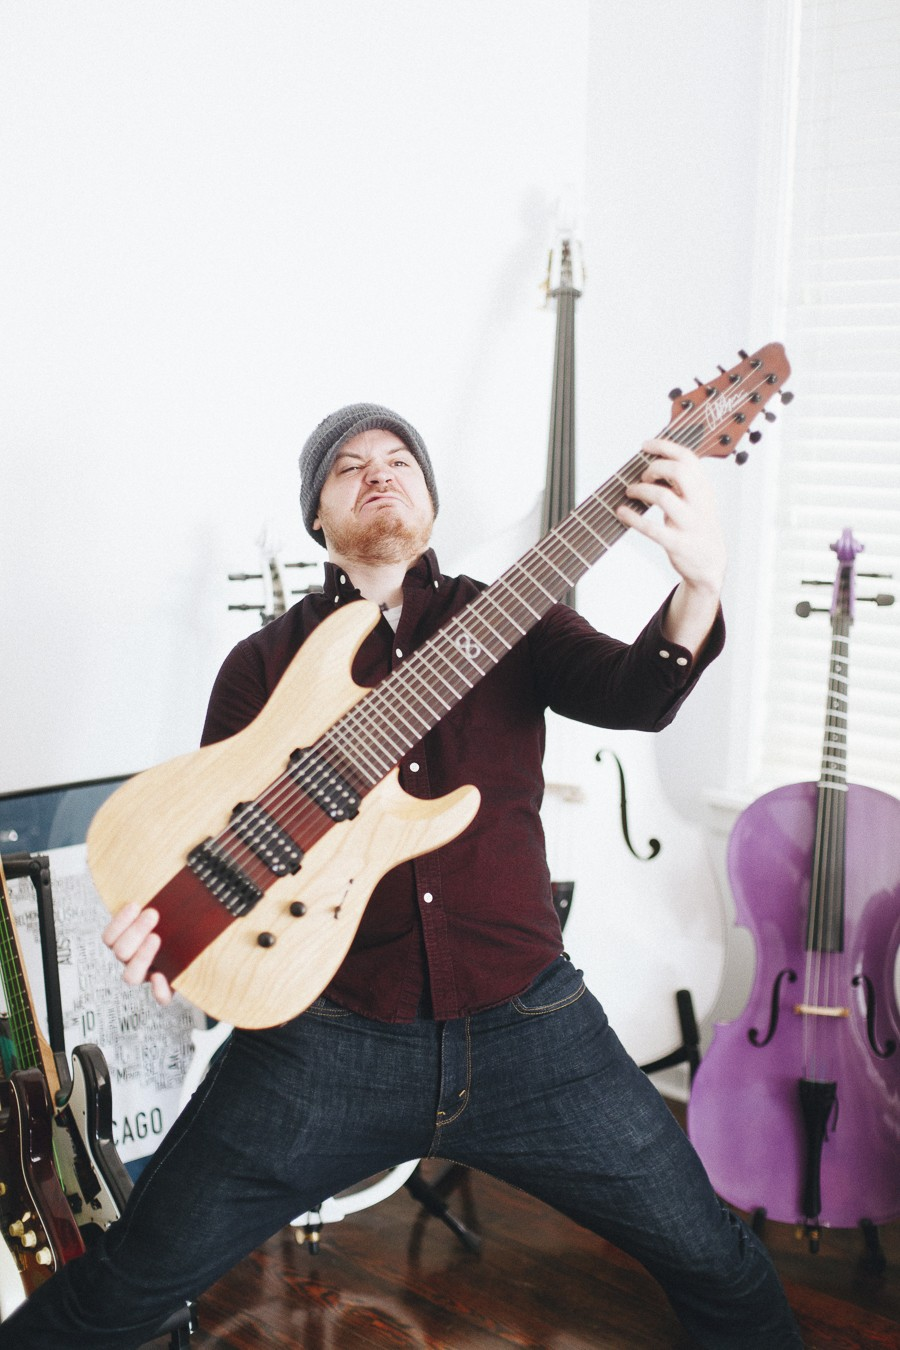 Rob Scallon demonstrates an impractical way to hold his Chapman Guitars signature model eight-string. - DANIELLE A. SCRUGGS